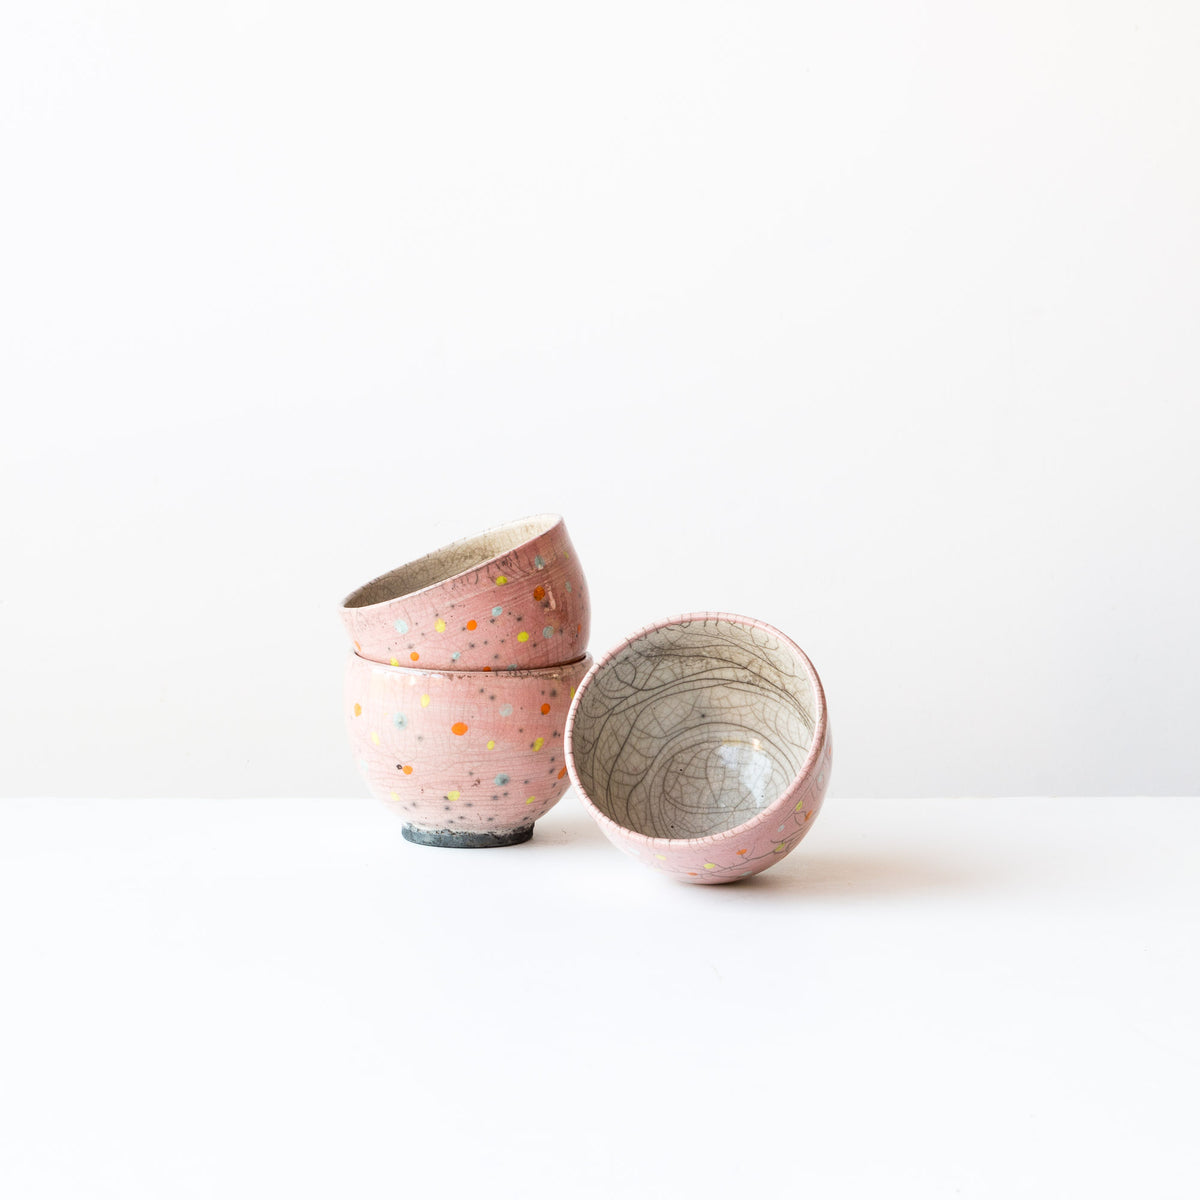 Pink Handmade Raku Tea Bowls with Dots - Sold by Chic & Basta